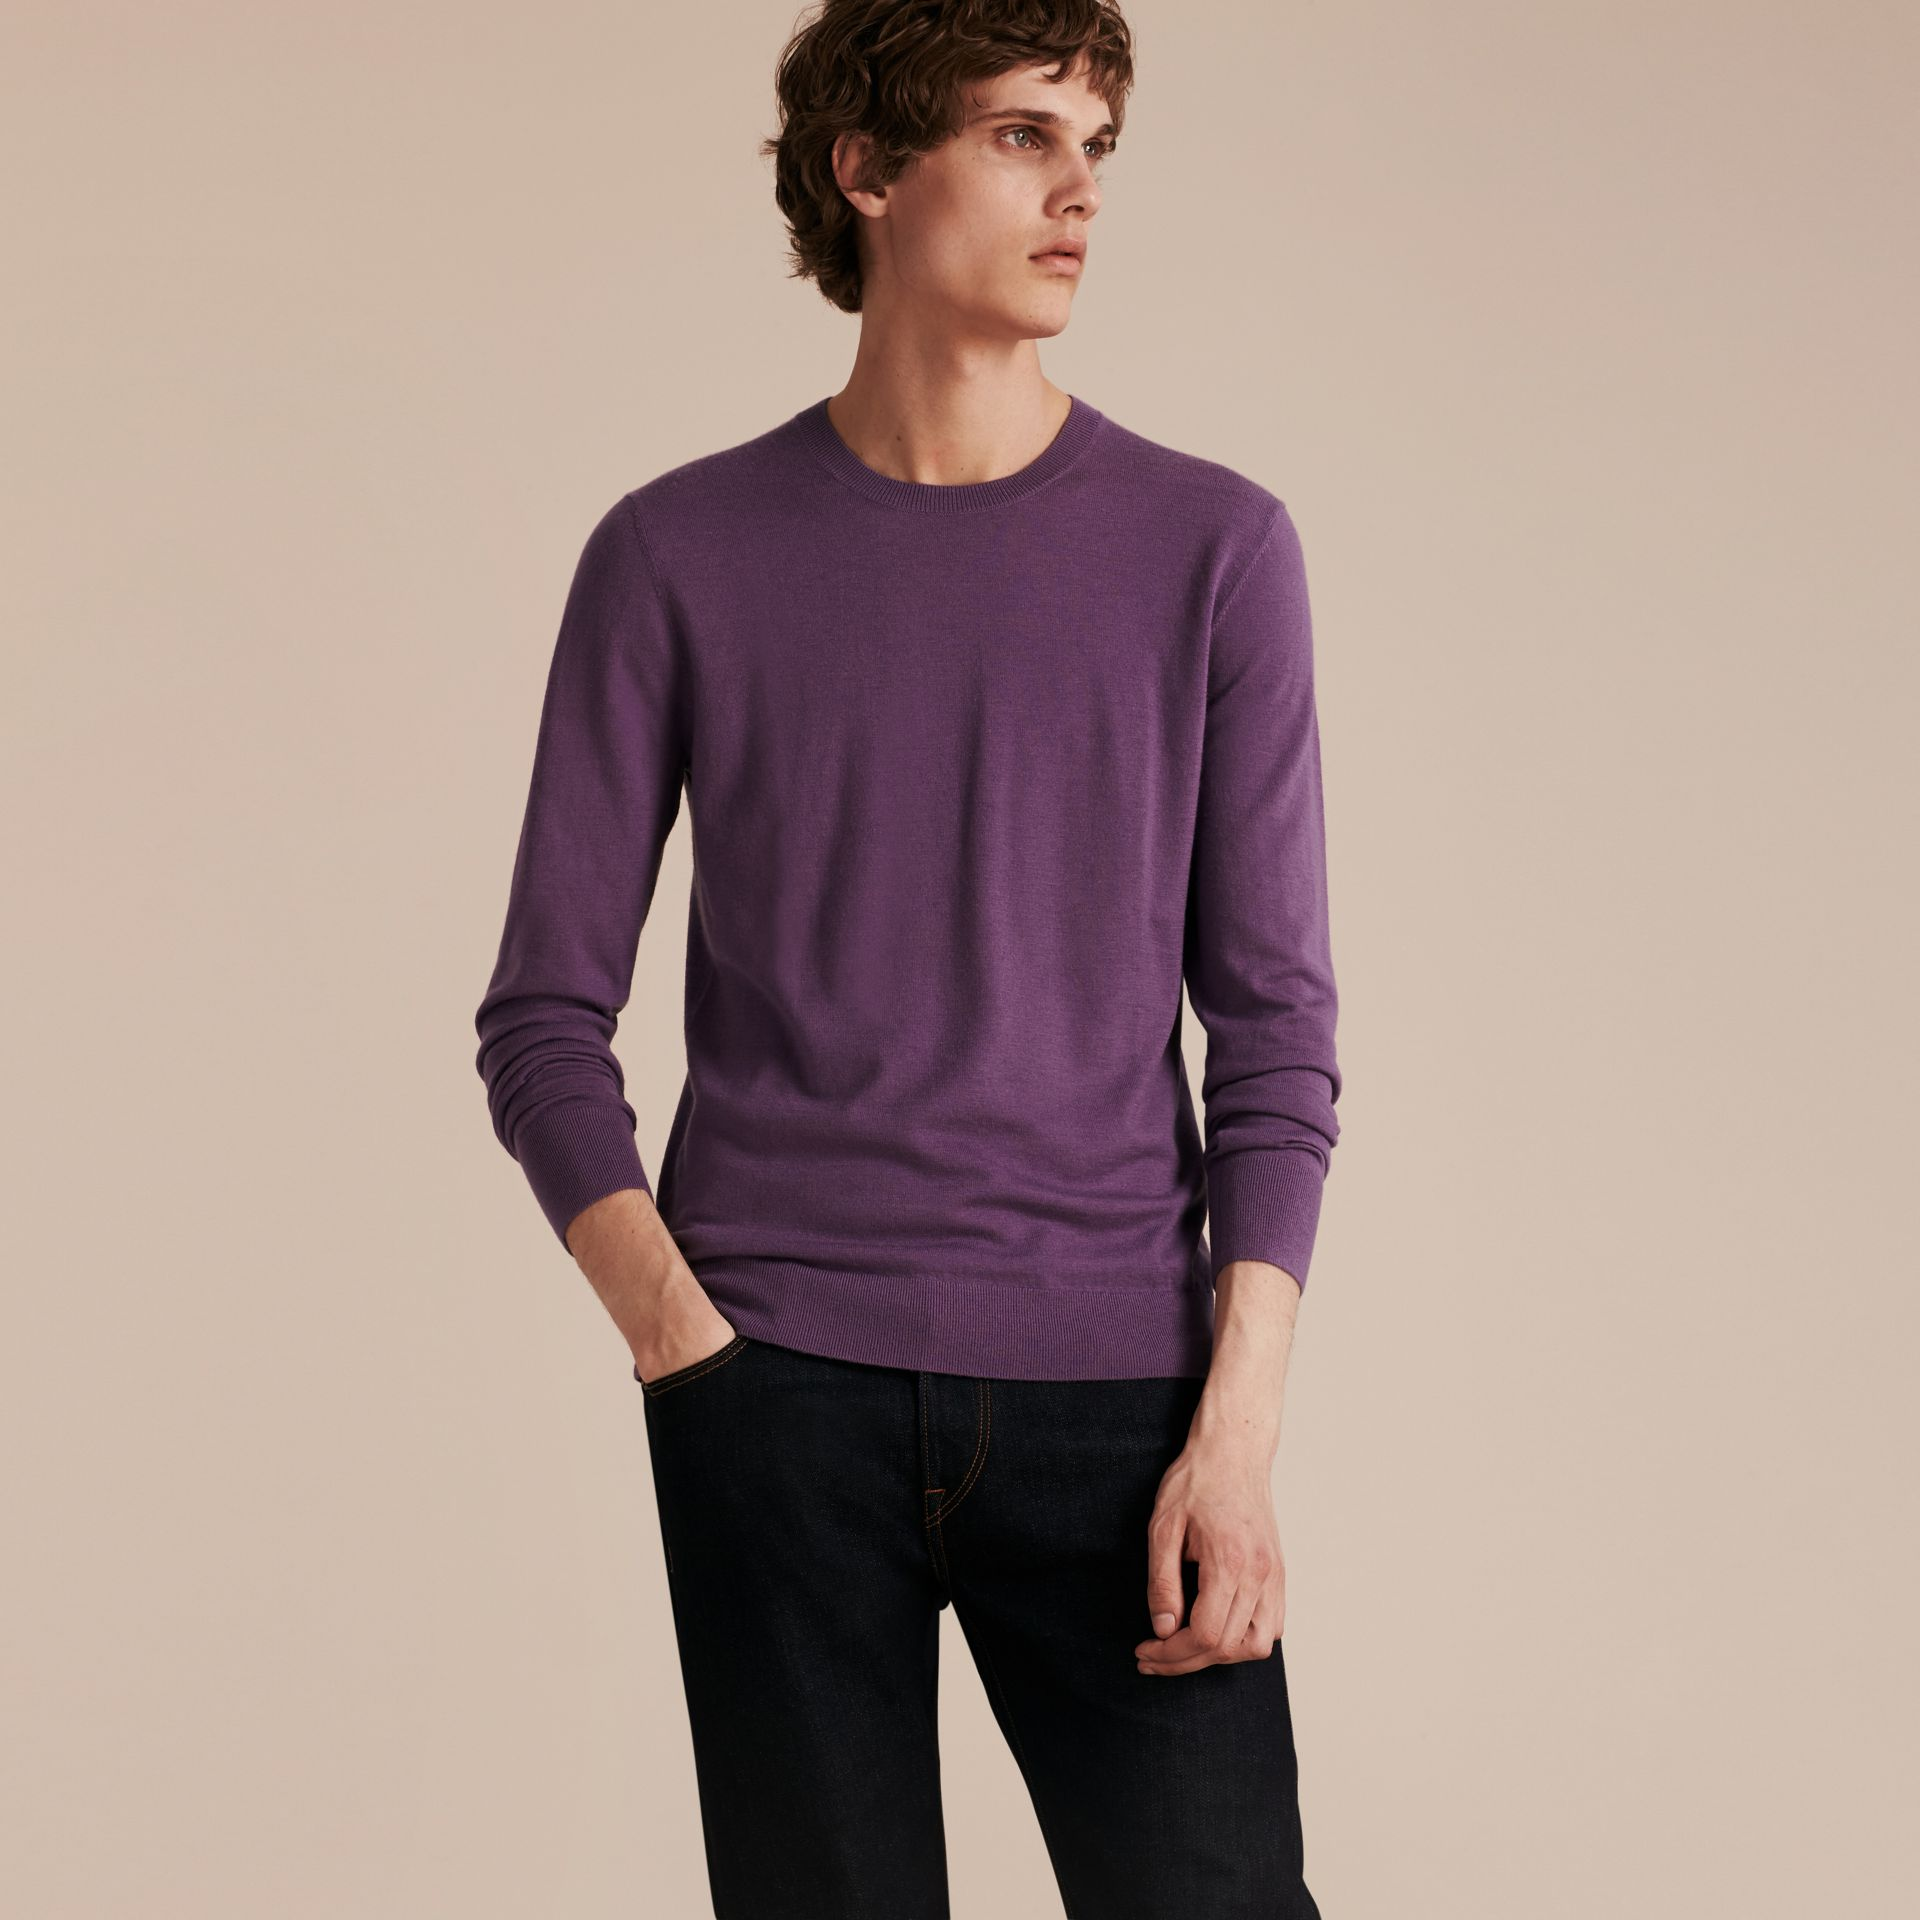 Dusty lilac Lightweight Crew Neck Cashmere Sweater with Check Trim Dusty Lilac - gallery image 6